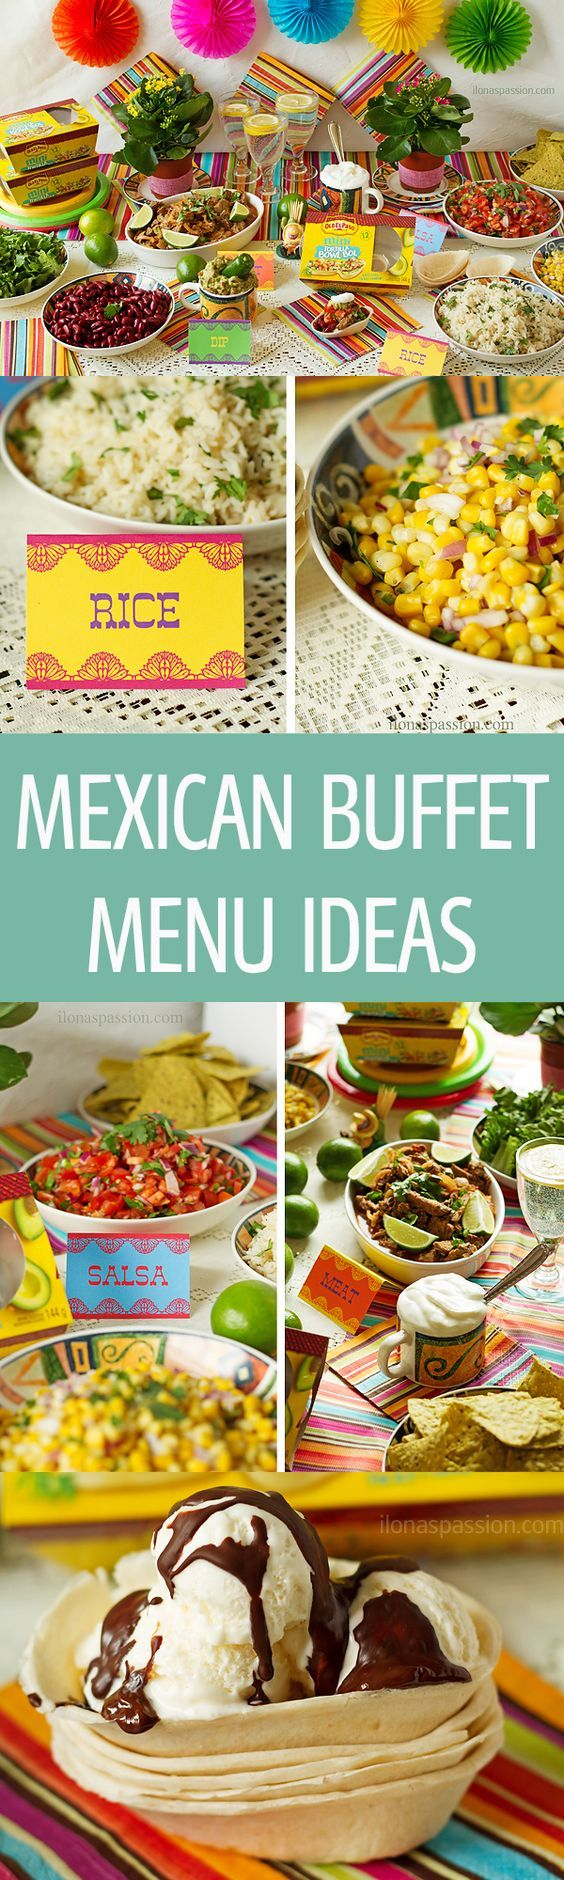 Dinner table with mexican food - Mexican Buffet Menu Ideas